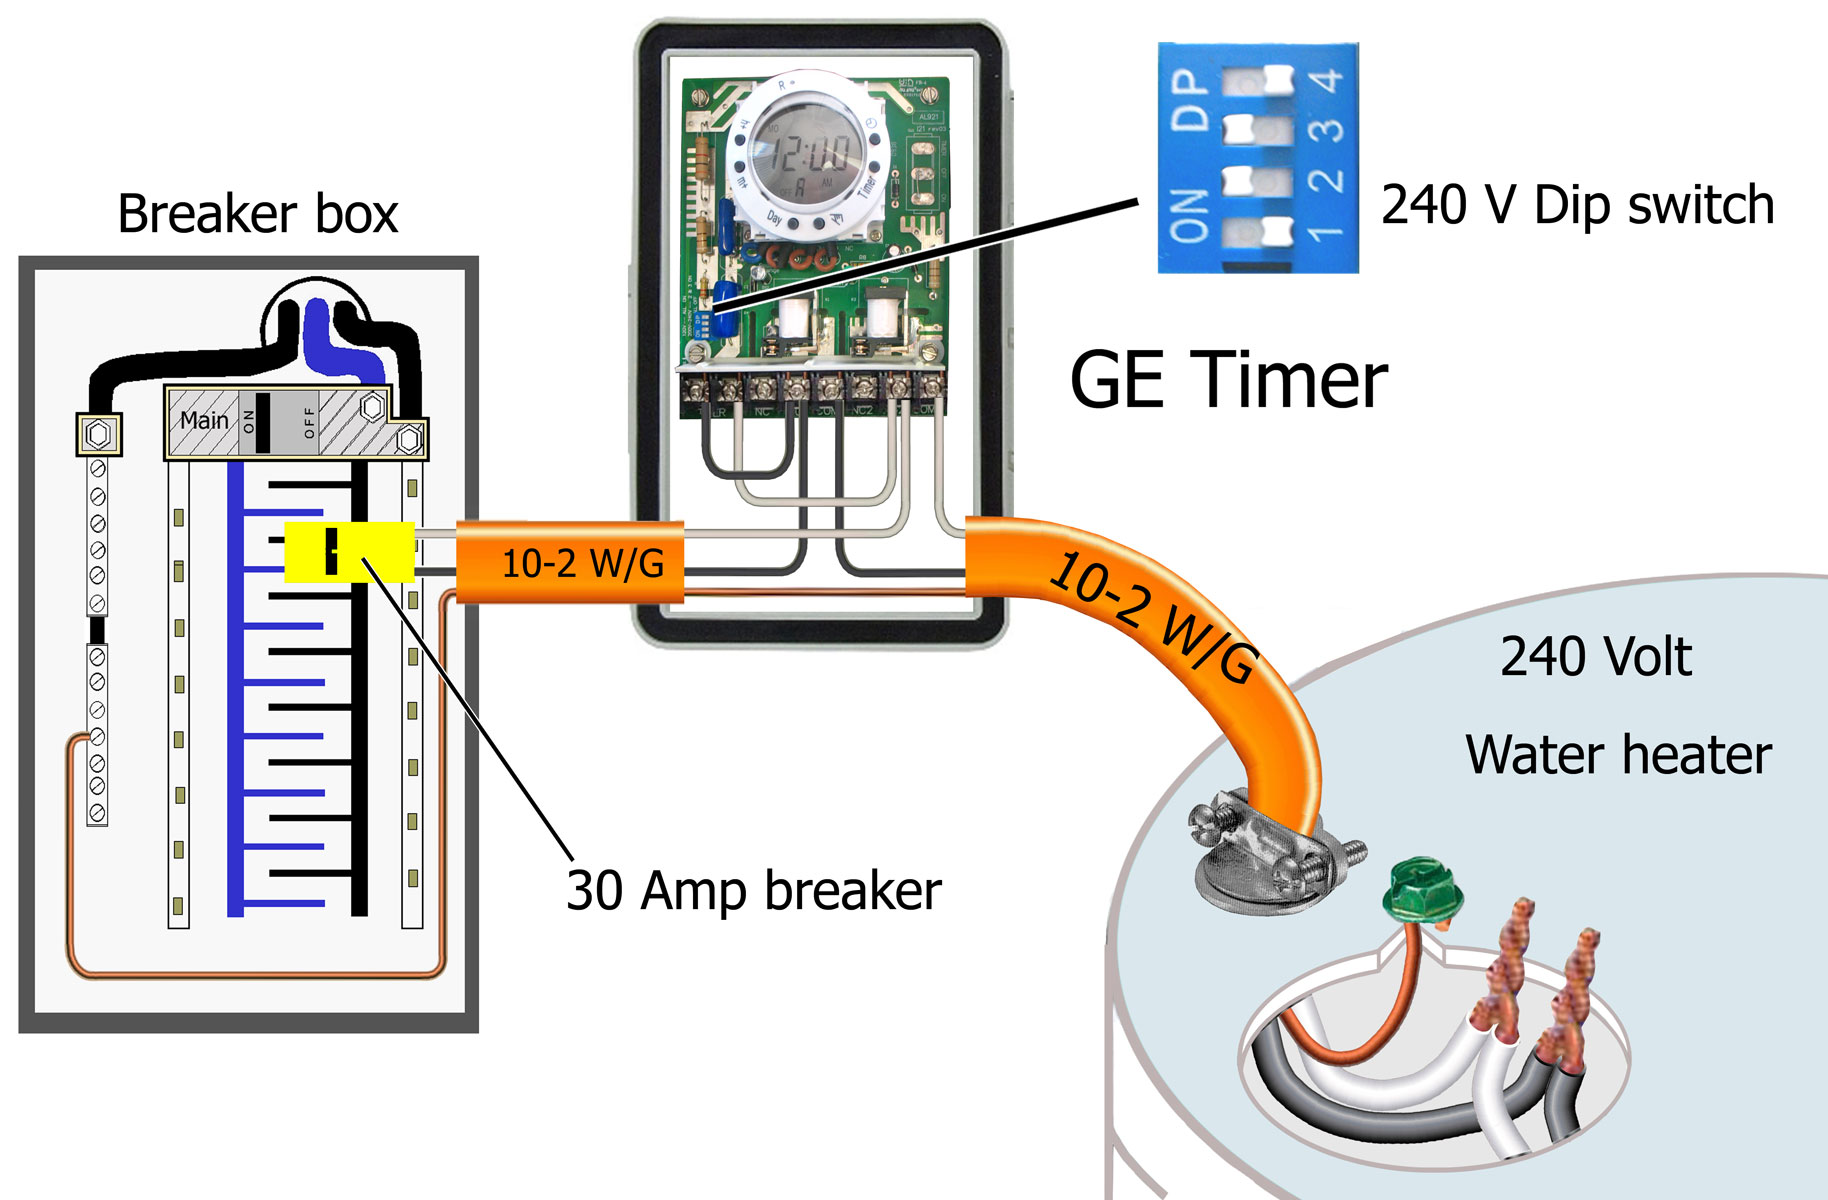 GE to water heater 500a how to wire ge 15136 timer 2 way water heater switch wiring diagram at bayanpartner.co